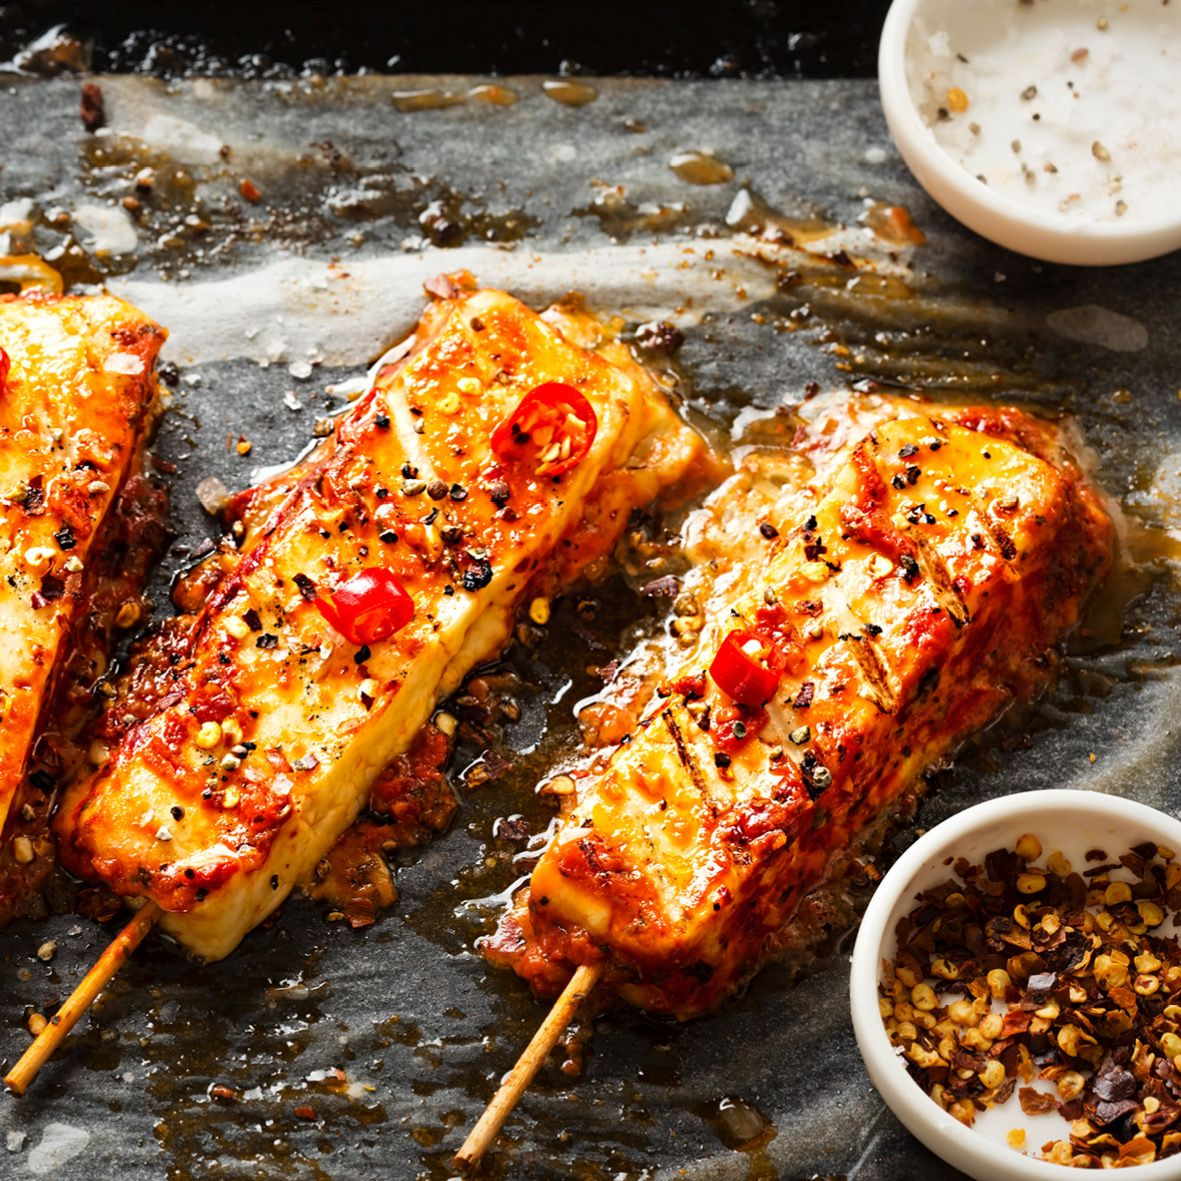 Spicy_halloumi_skewers_with_chilli.jpg